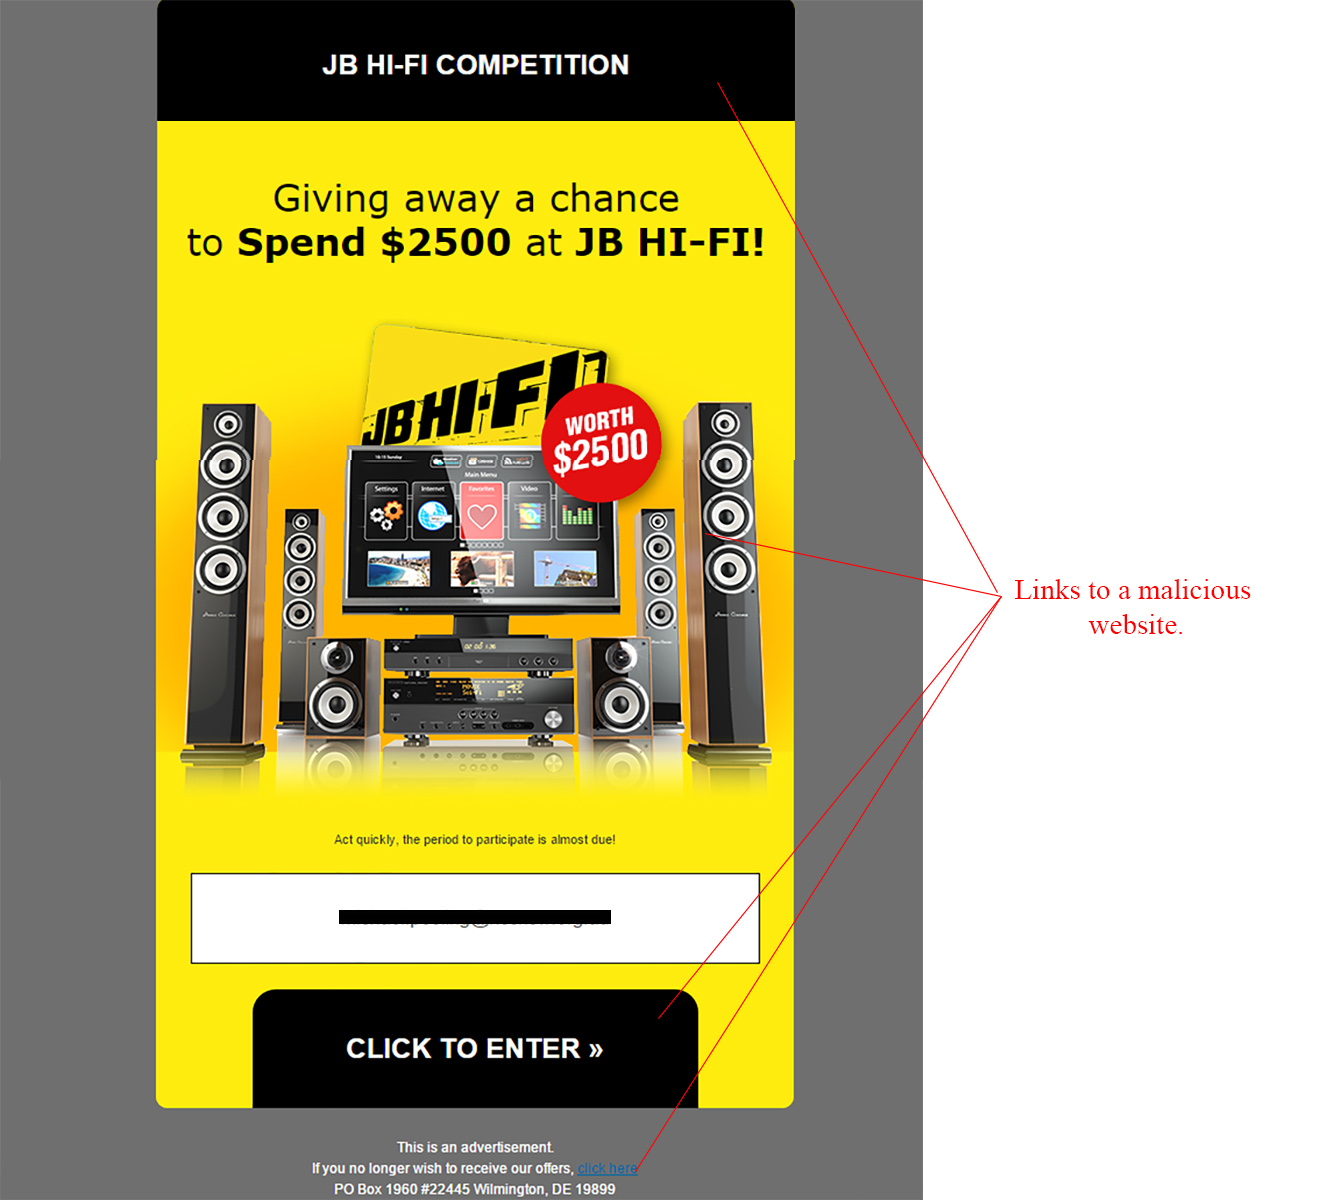 MailShark JB Hi-Fi Competition Winner Email Scam